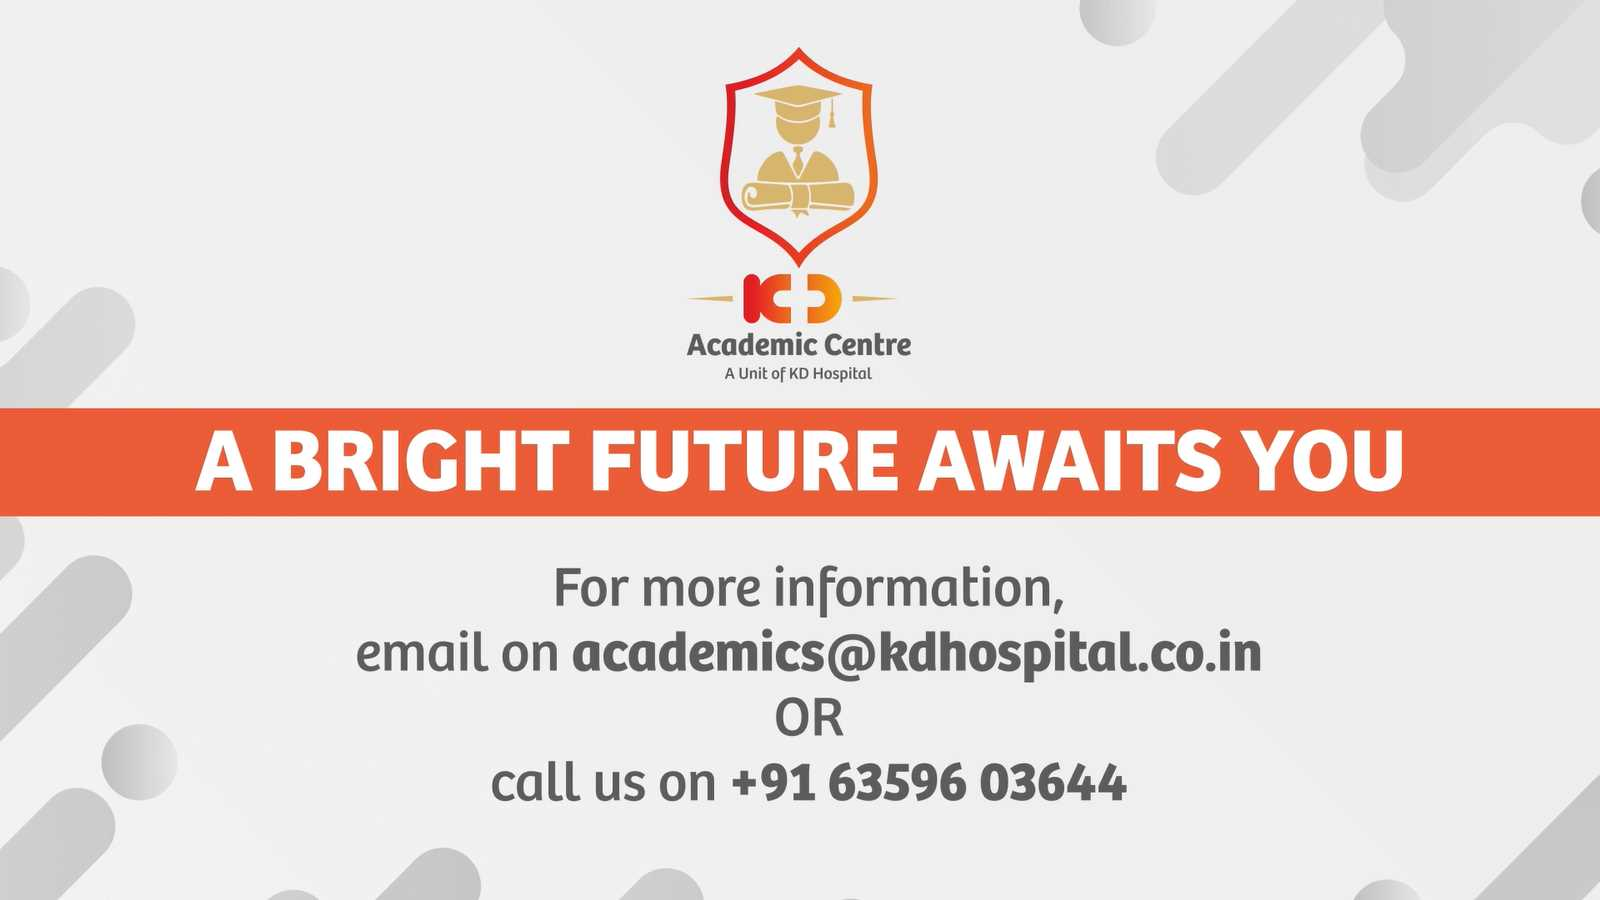 ADMISSIONS ARE OPEN!!!  Joining KD Academics can be life-changing! Get a chance to quality education, skills and training, We ensure success becomes your story. More Information Call:- +91 6359603644 or visit:- https://bit.ly/3hlLZuo  #kdacademics #CareerinParamedical  #paramedical #paramedicalstudies #xray #CTscan #MRI  #career  #jobopportunity #healthcare #paramedic #ParamedicalCourses #academics #admission #courses #medical #health #Connections #wellness #Nusring  #medicalstudent #medicalschool #becomeaparamedic #placement #studentsuccess #Ahmedabad #Gujarat #India